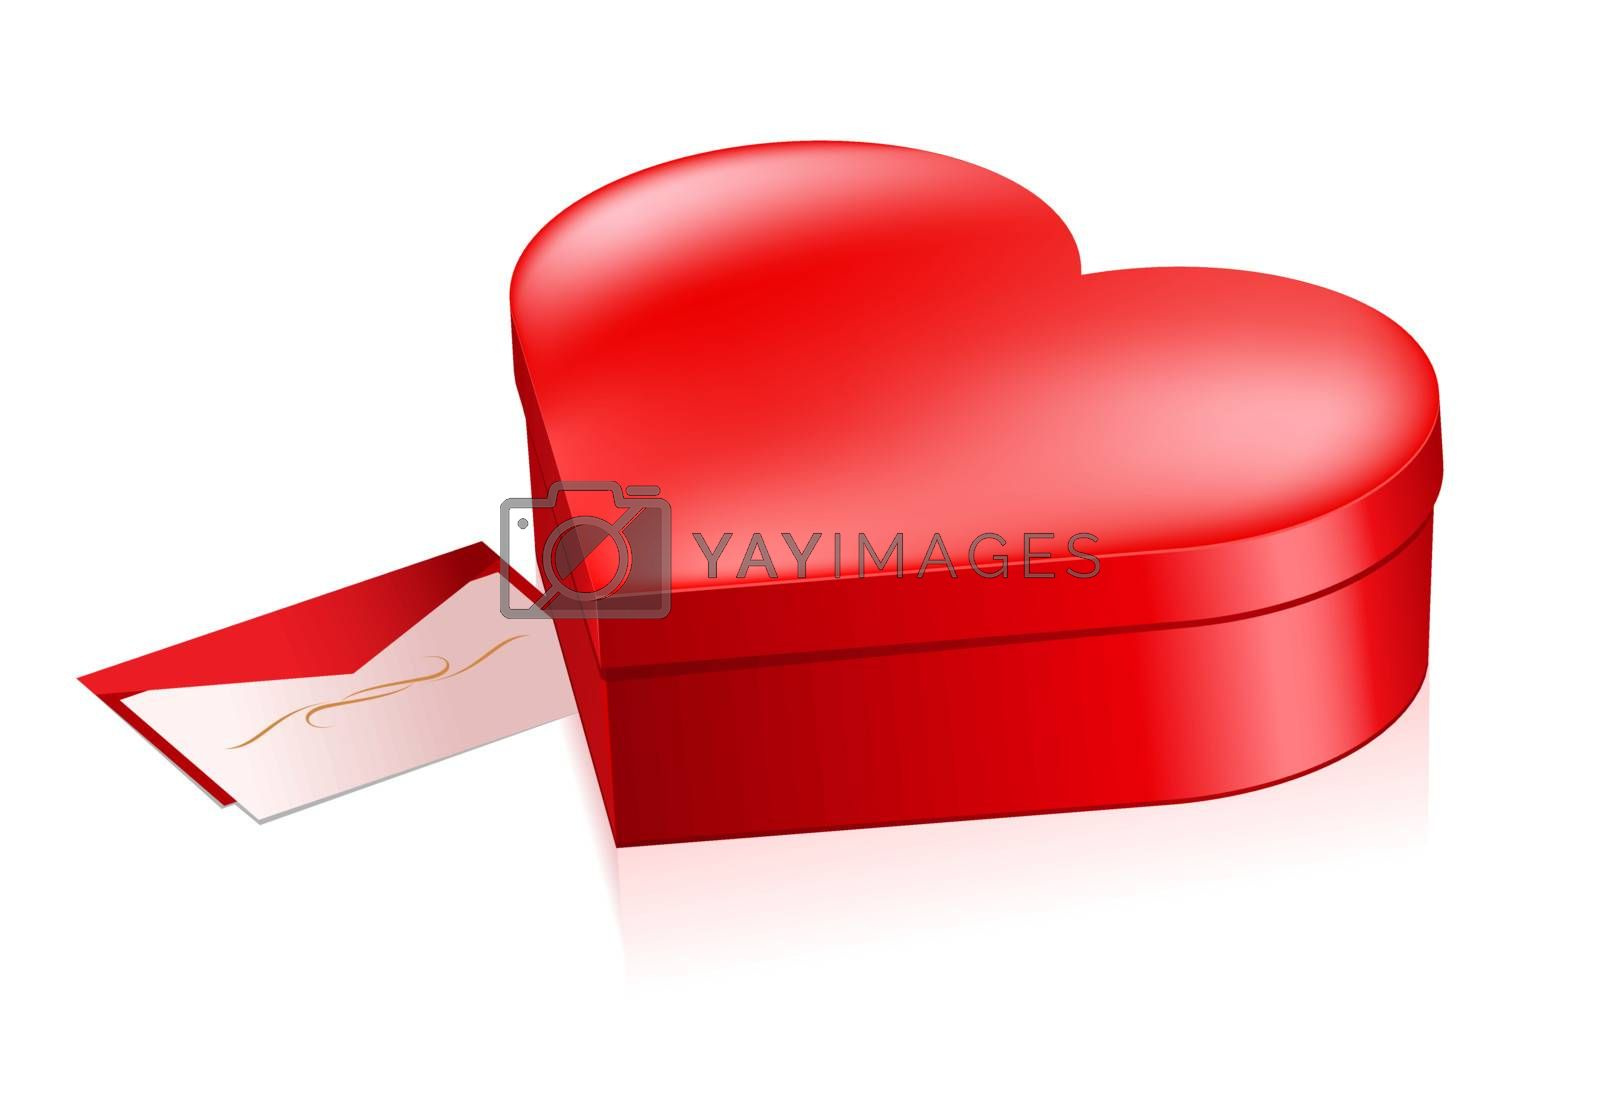 Red box in heart shape by dvarg